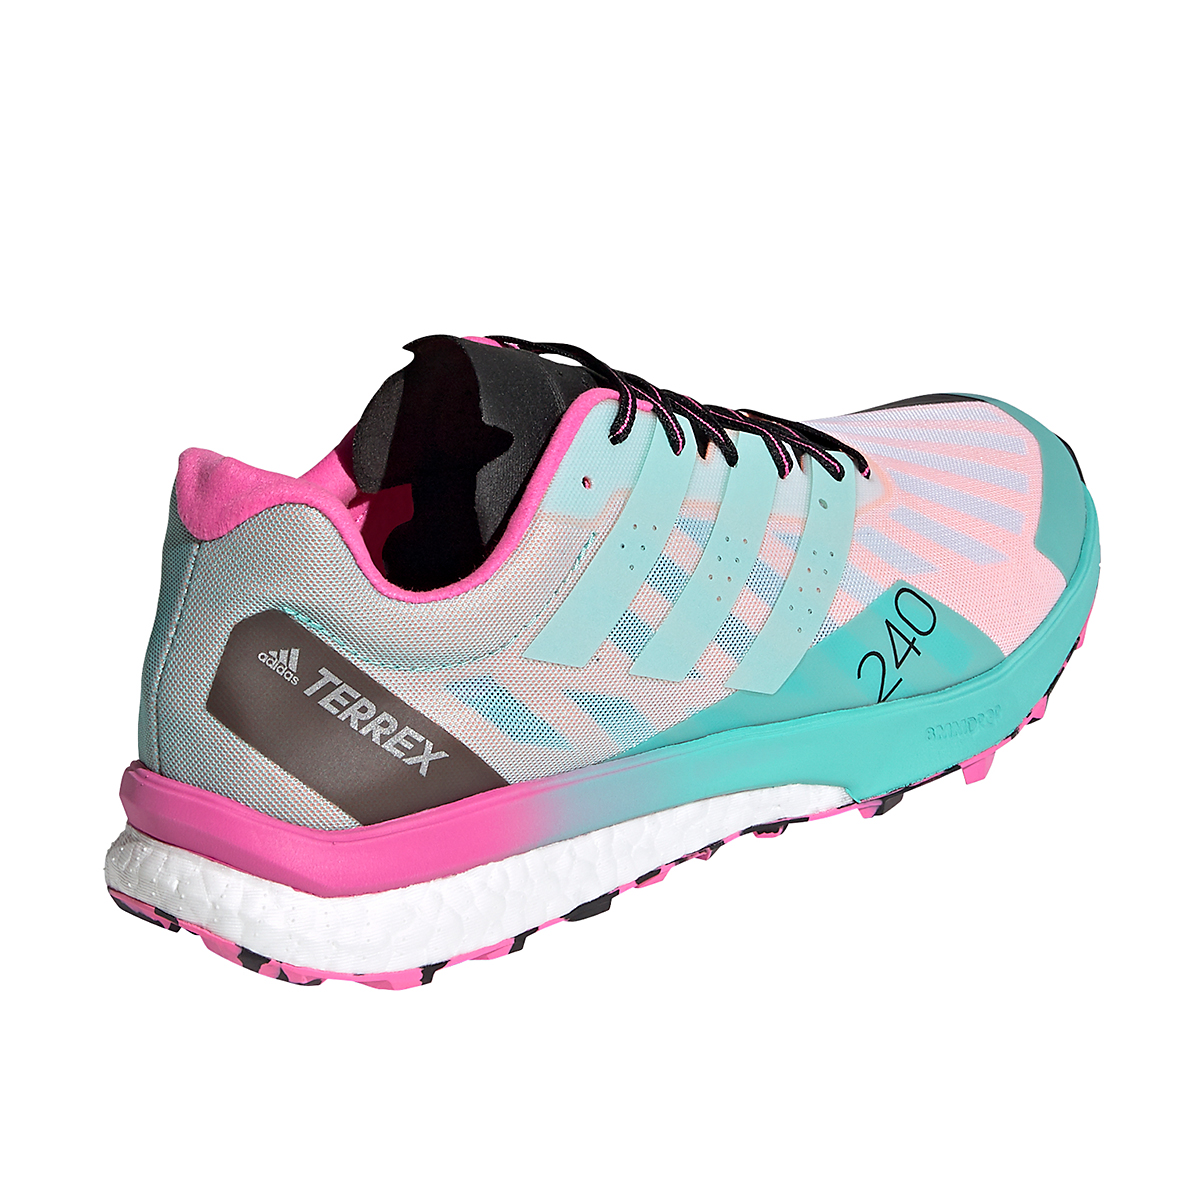 Men's Adidas Terrex Speed Ultra Trail Running Shoe - Color: White/Clear Mint/Screaming Pink - Size: 6.5 - Width: Regular, White/Clear Mint/Screaming Pink, large, image 3